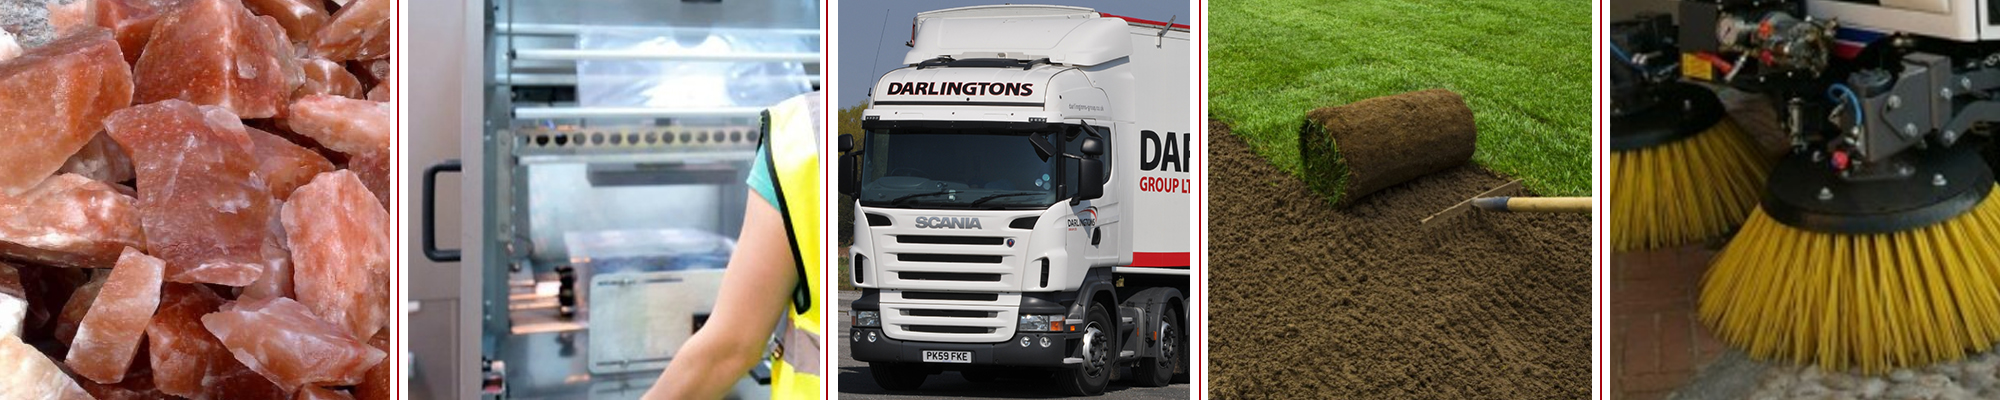 Darlingtons Group Services